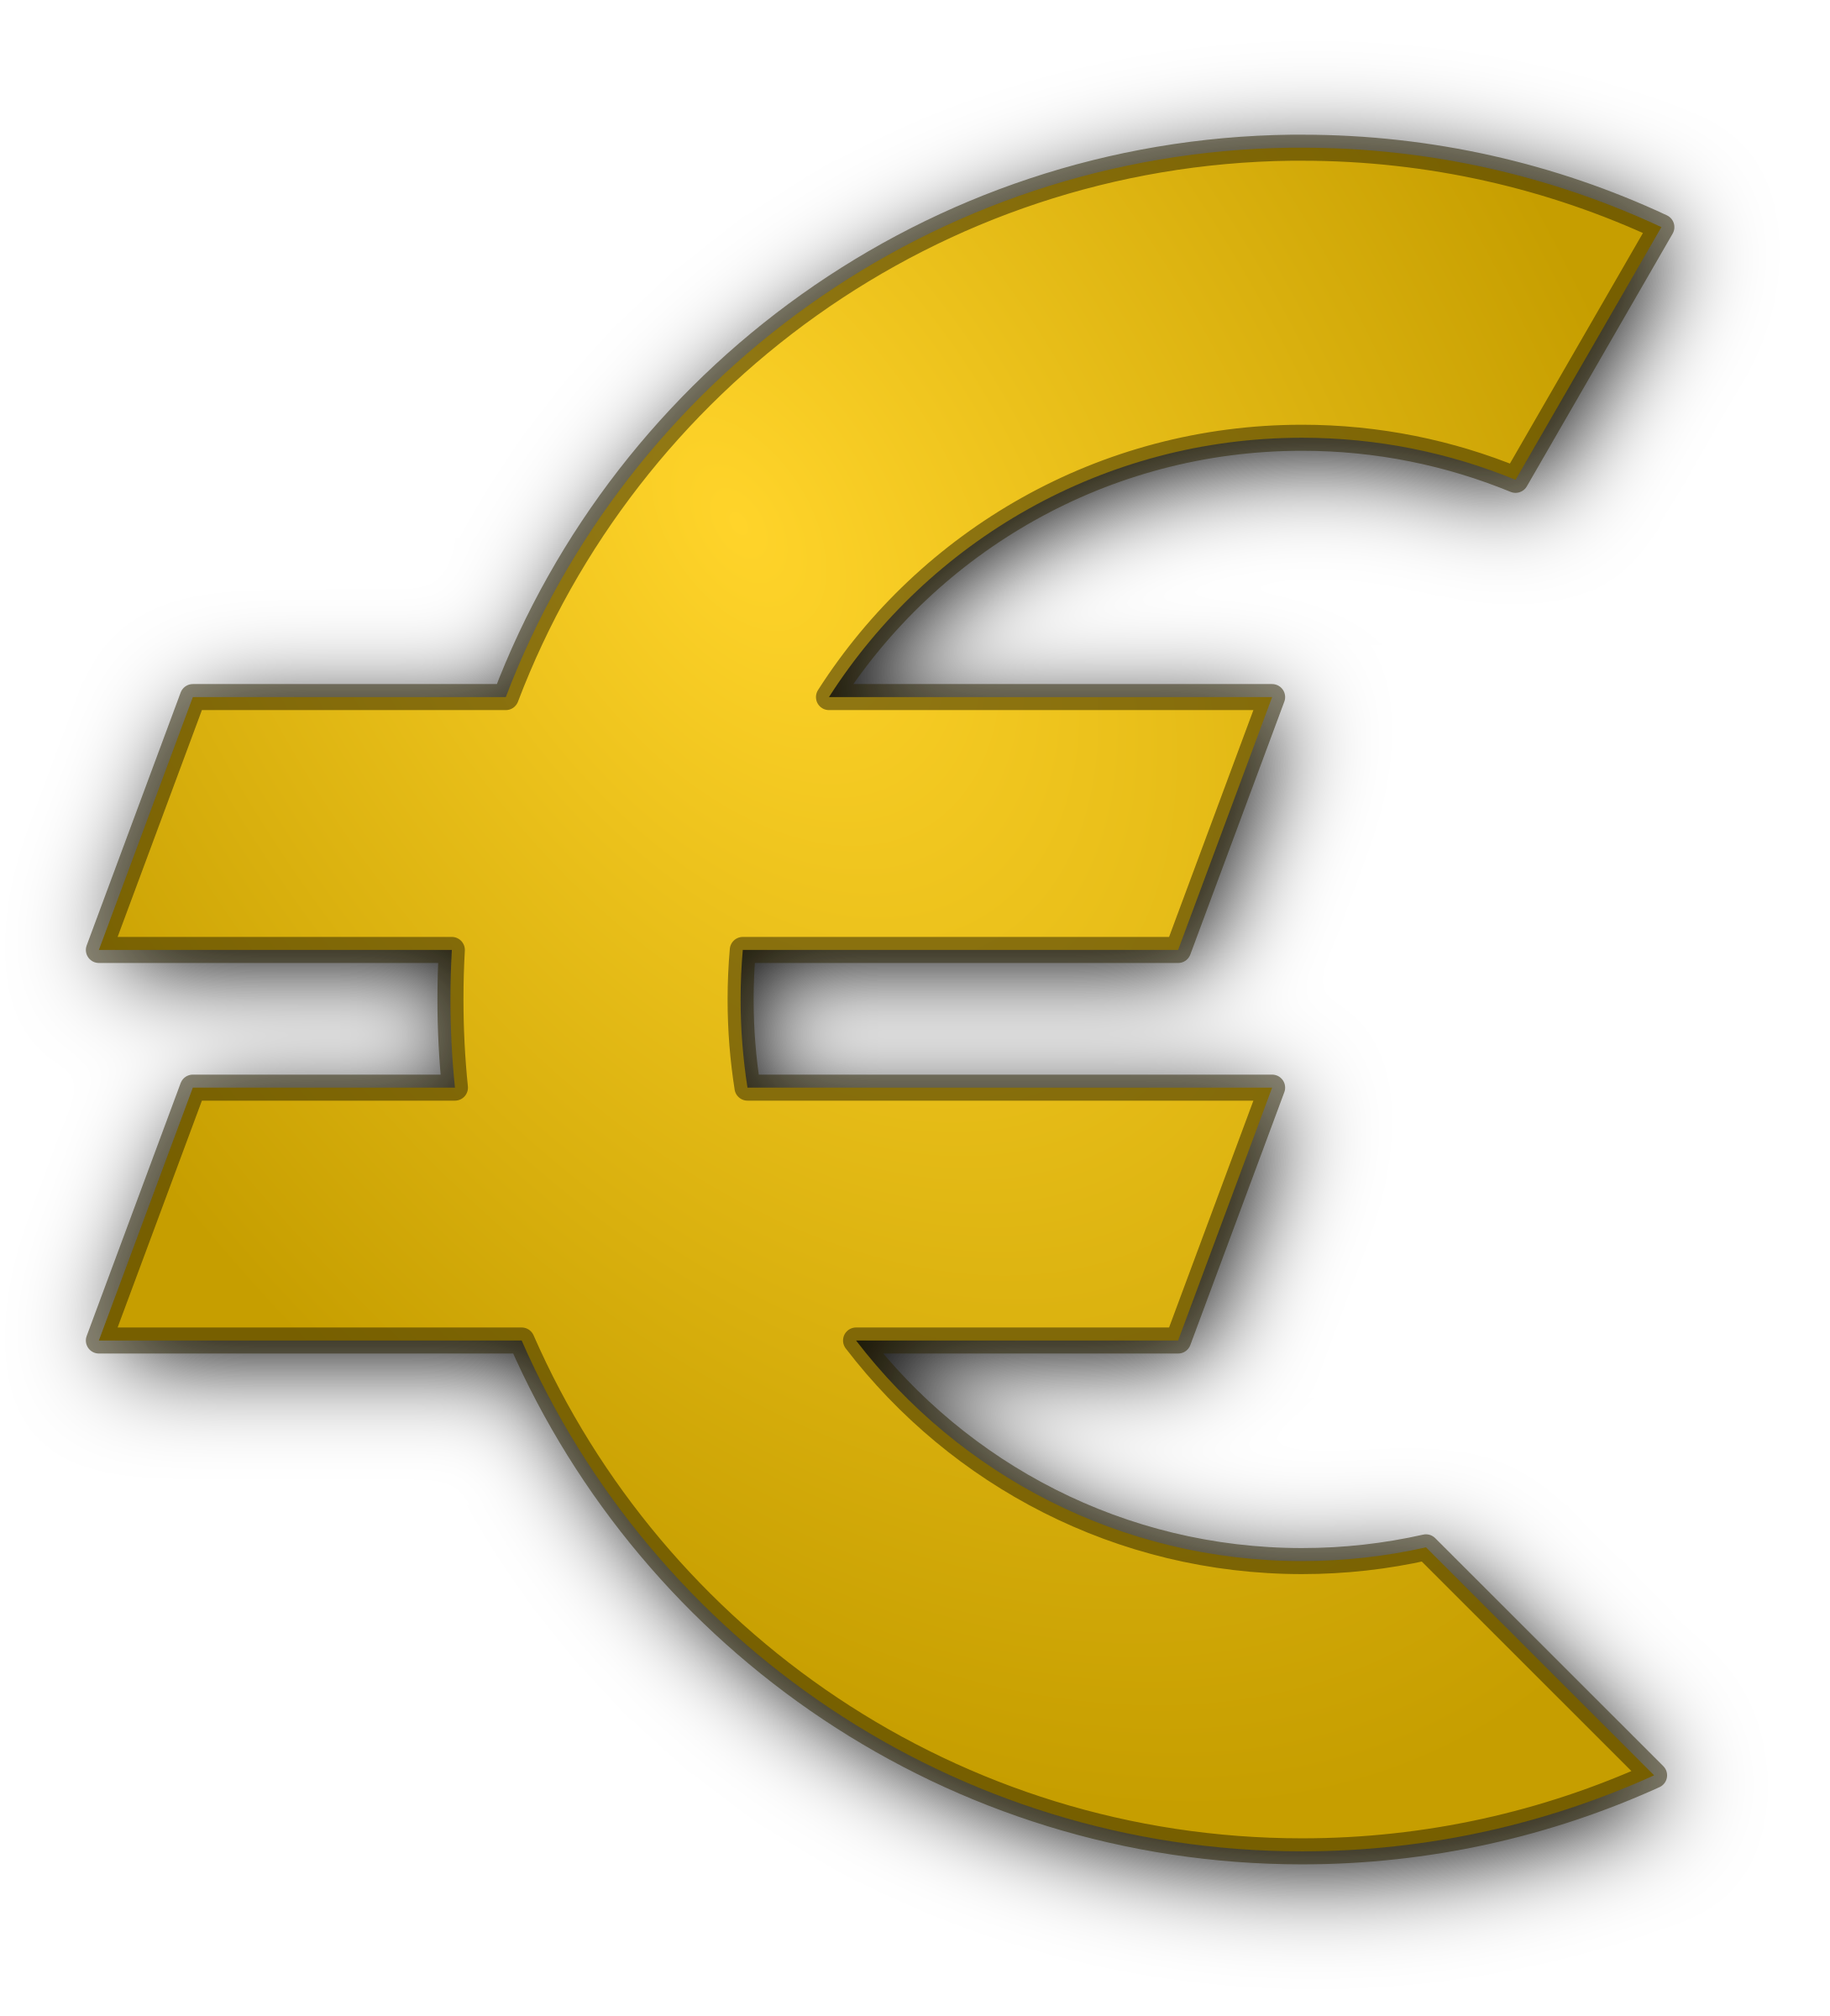 Euro by ernes